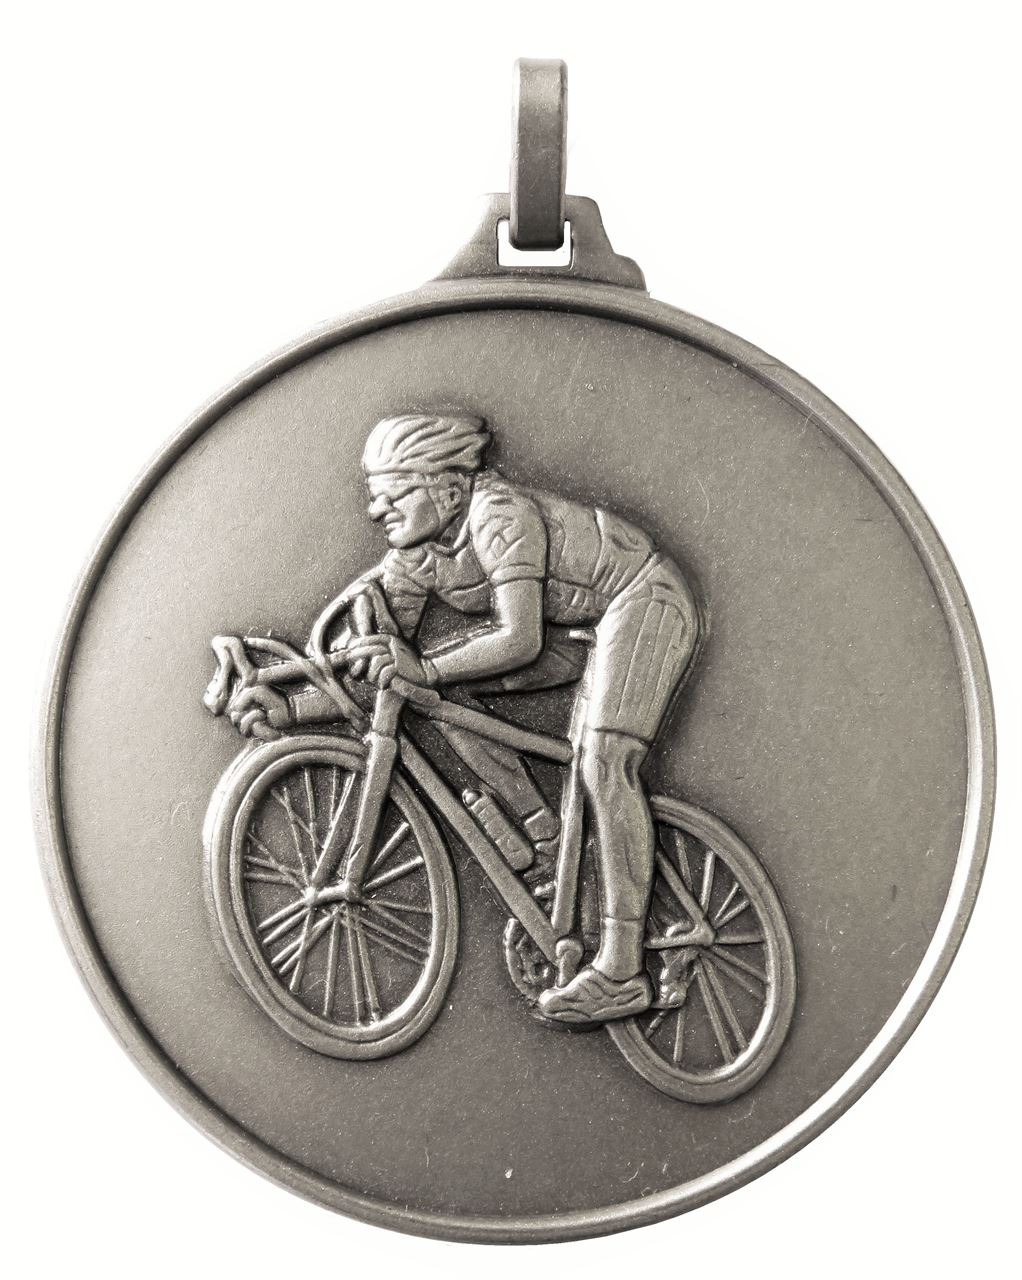 Silver Economy Cycling Medal (size: 52mm) - 196E